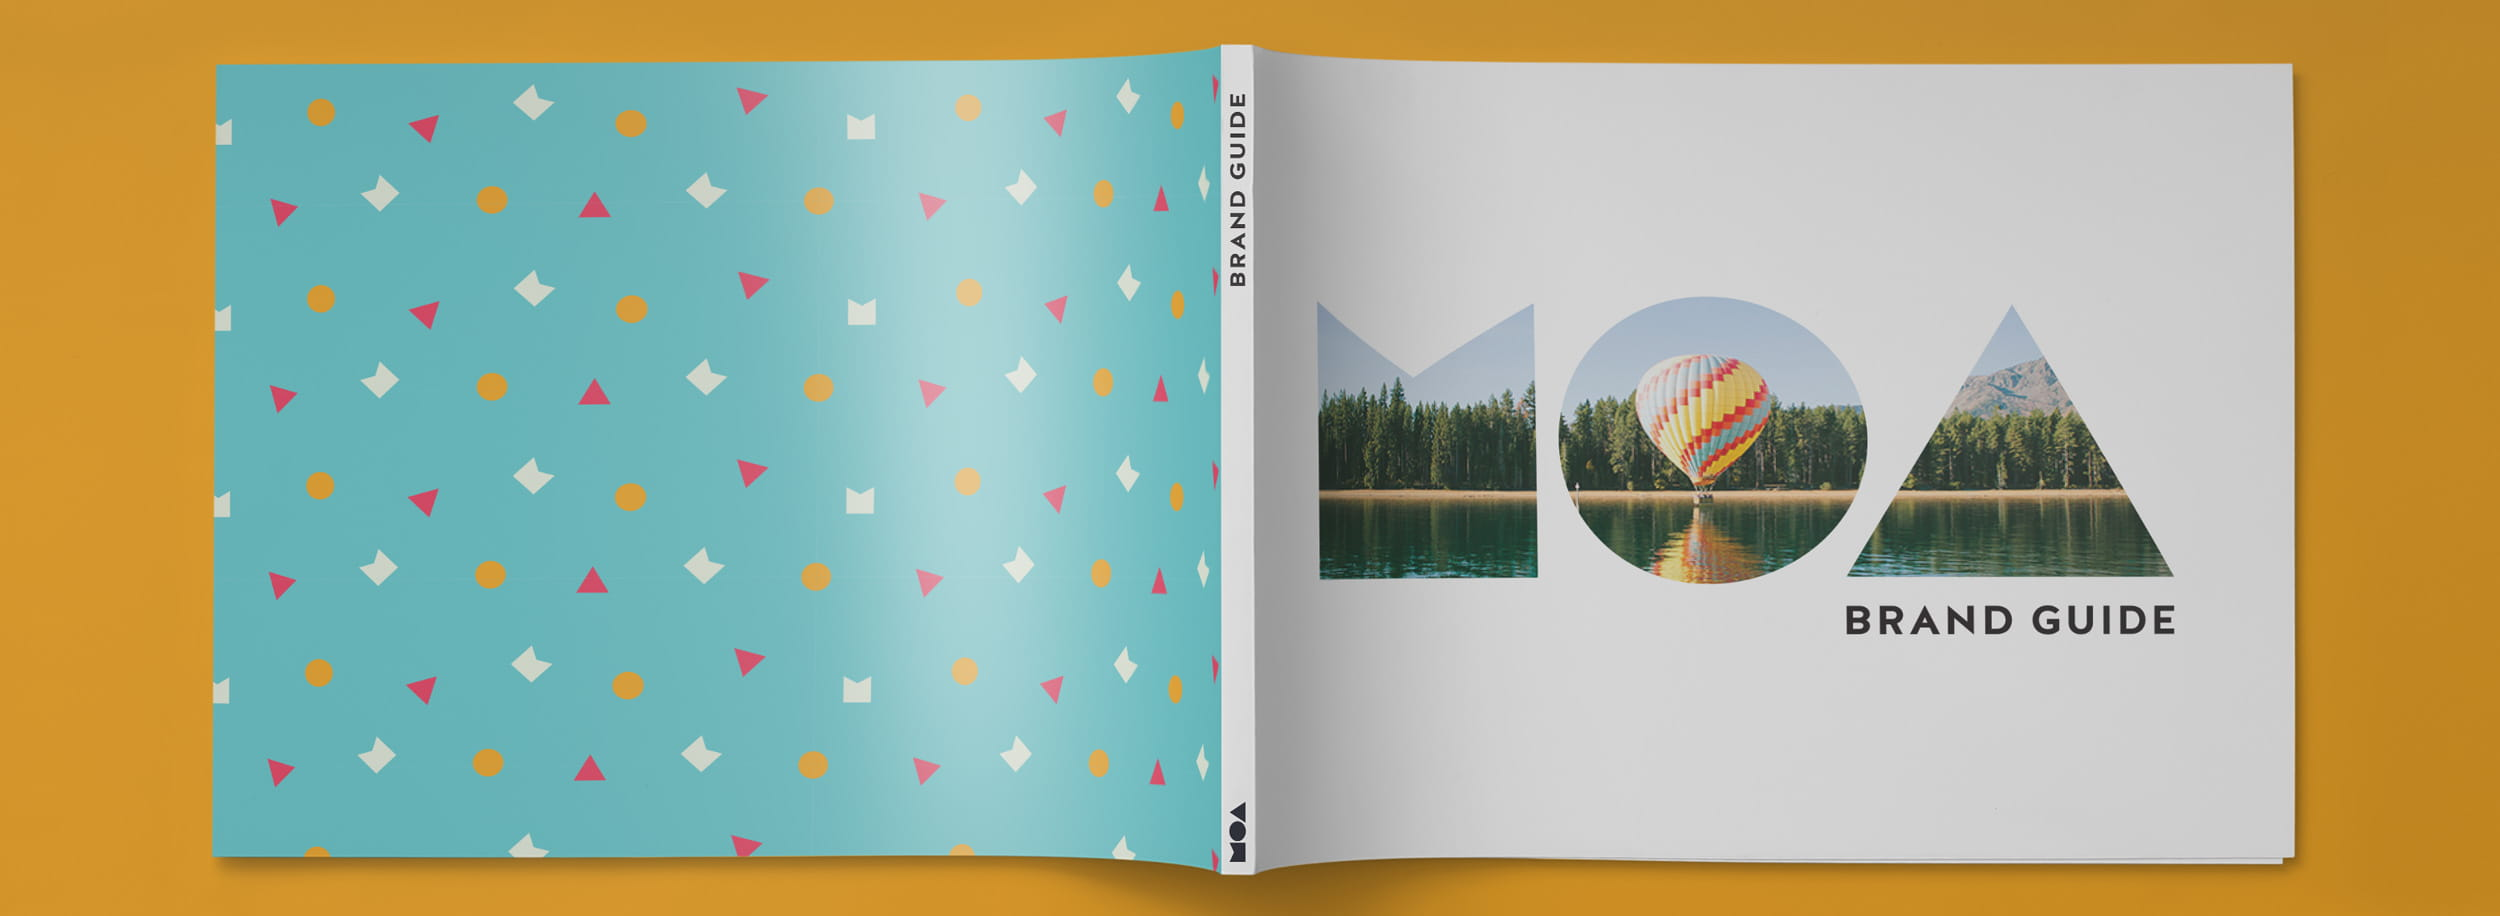 Brandbook design for MOA: front and back covers